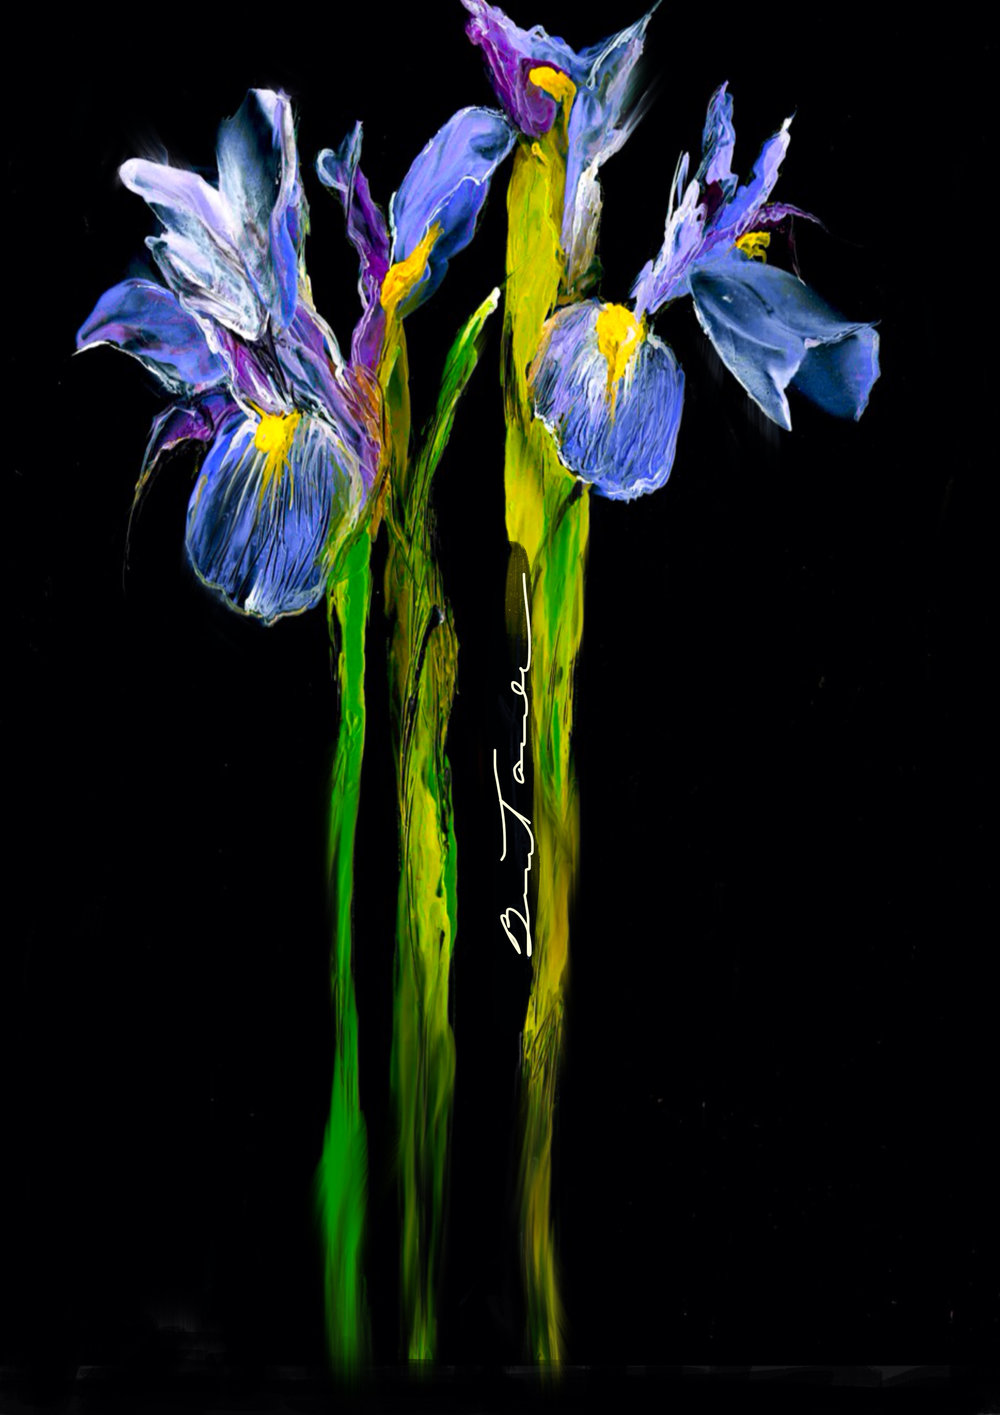 Iris-in-wax-with-white-signature-(1).jpg